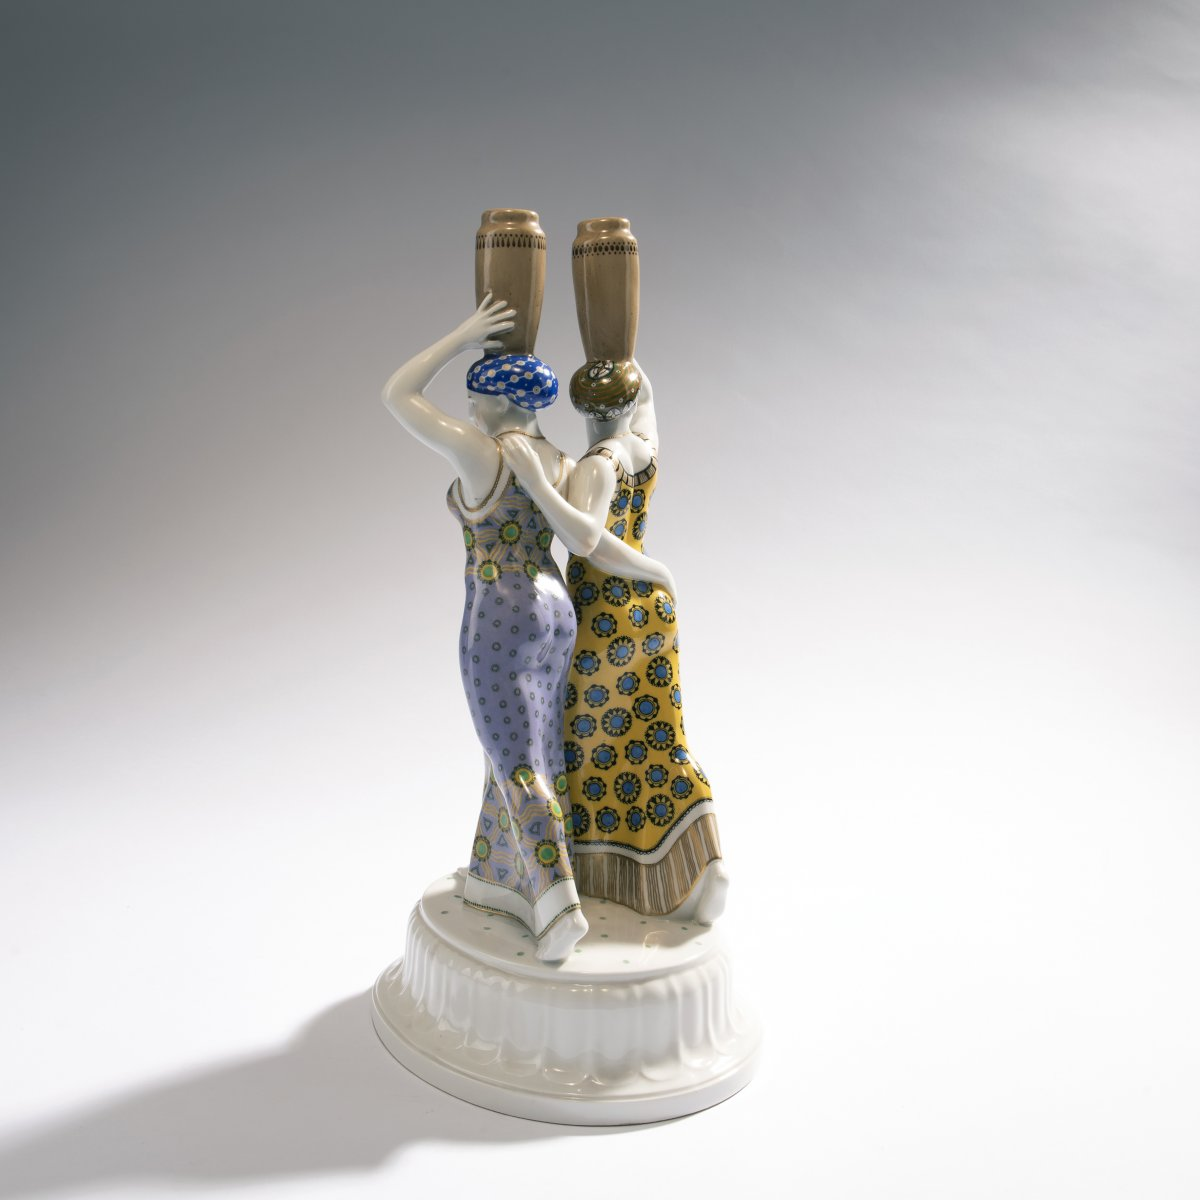 Lot 40 - Adolph Amberg, 'Two Greek women', 1909'Two Greek women', 1909H. 39 cm. Made by KPM Berlin,